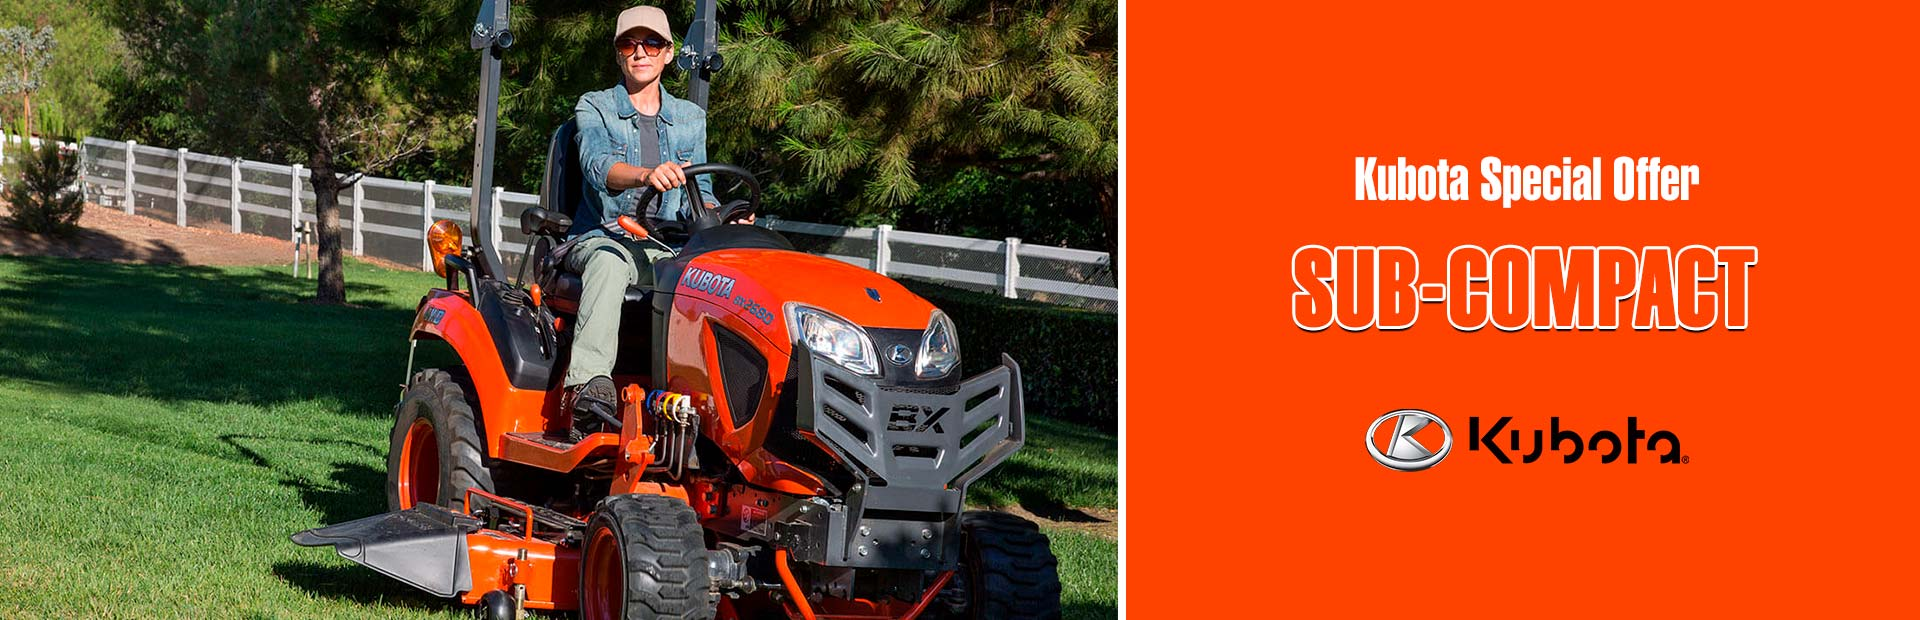 Kubota - Kubota Special Offer - Tractors Sub-Compact Valley